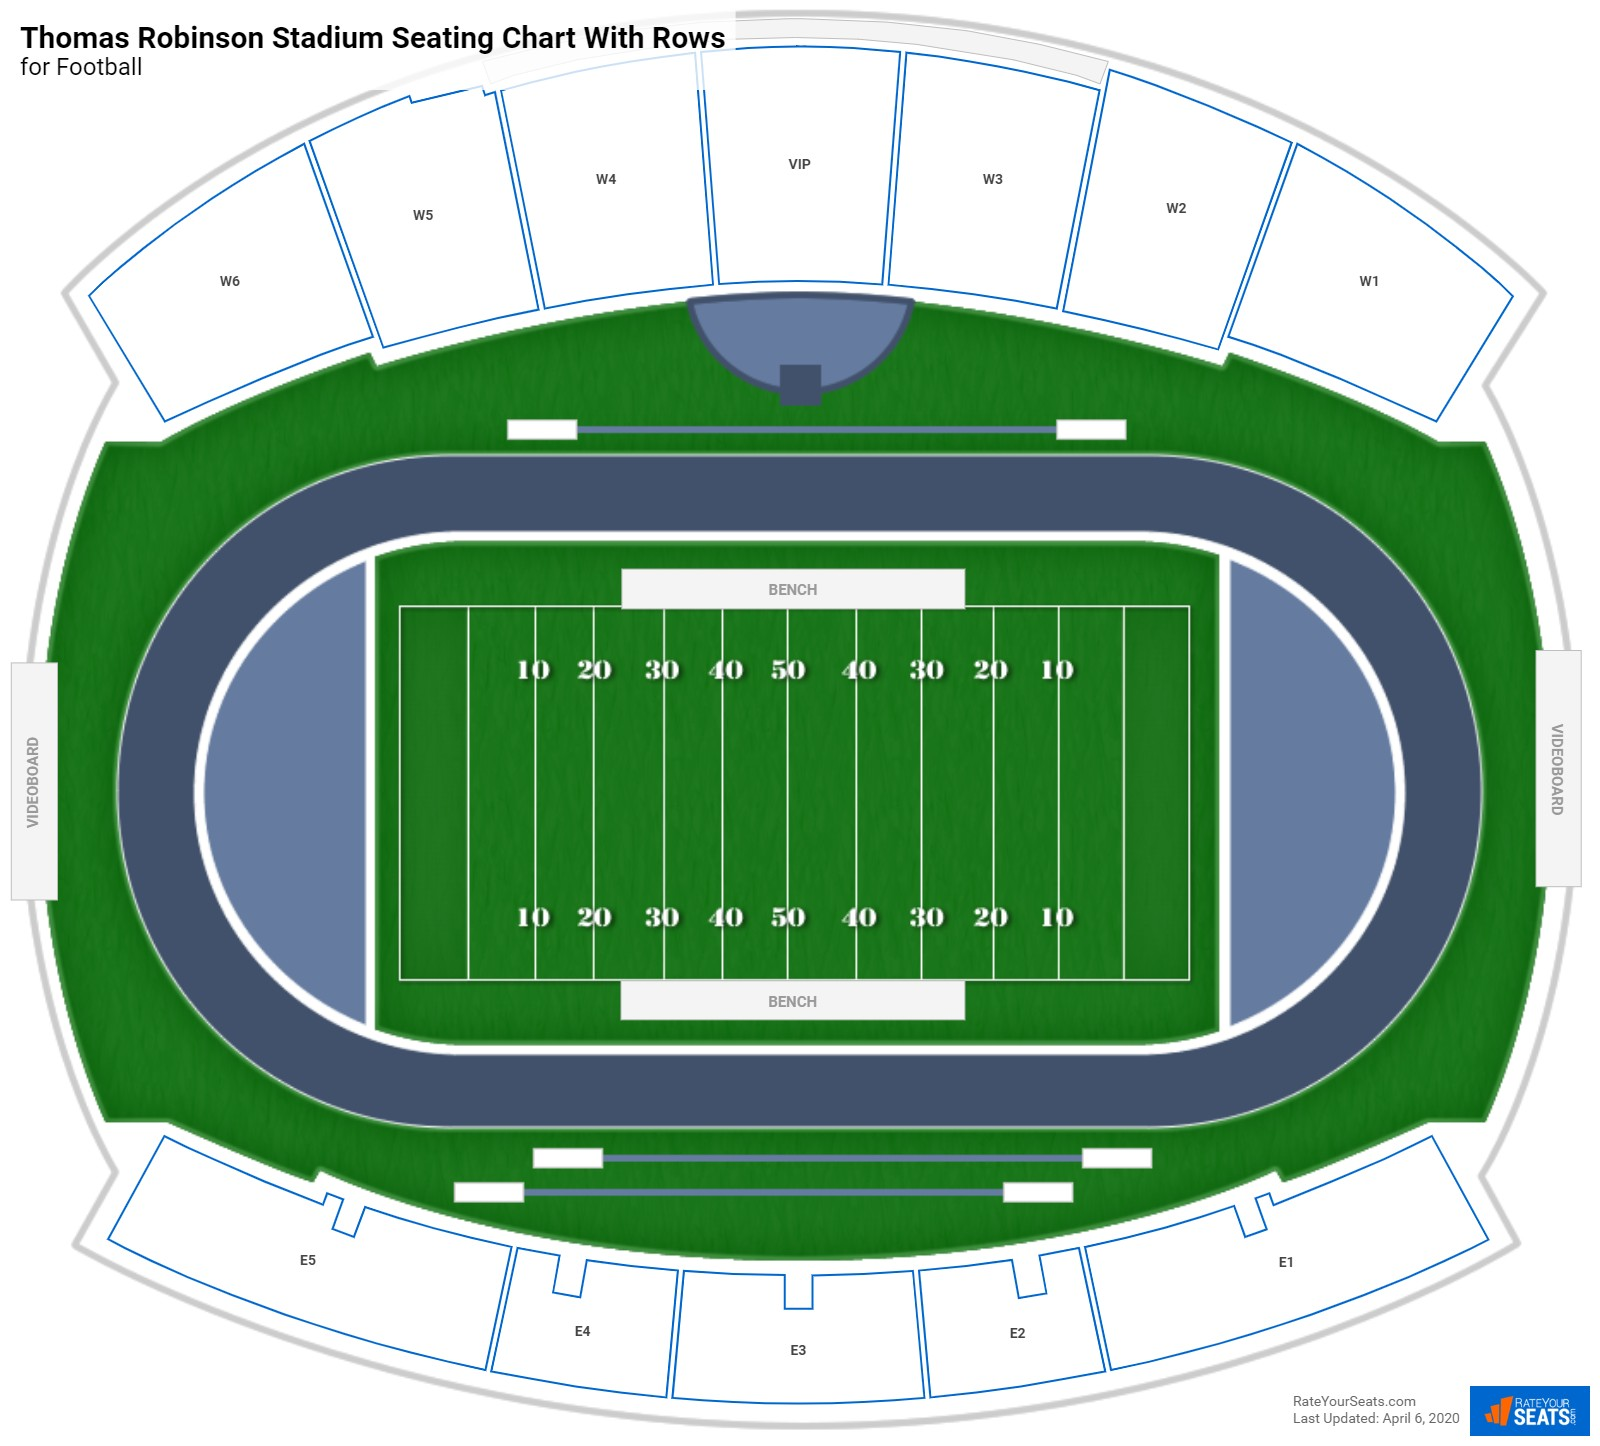 Thomas Robinson Stadium seating chart with rows